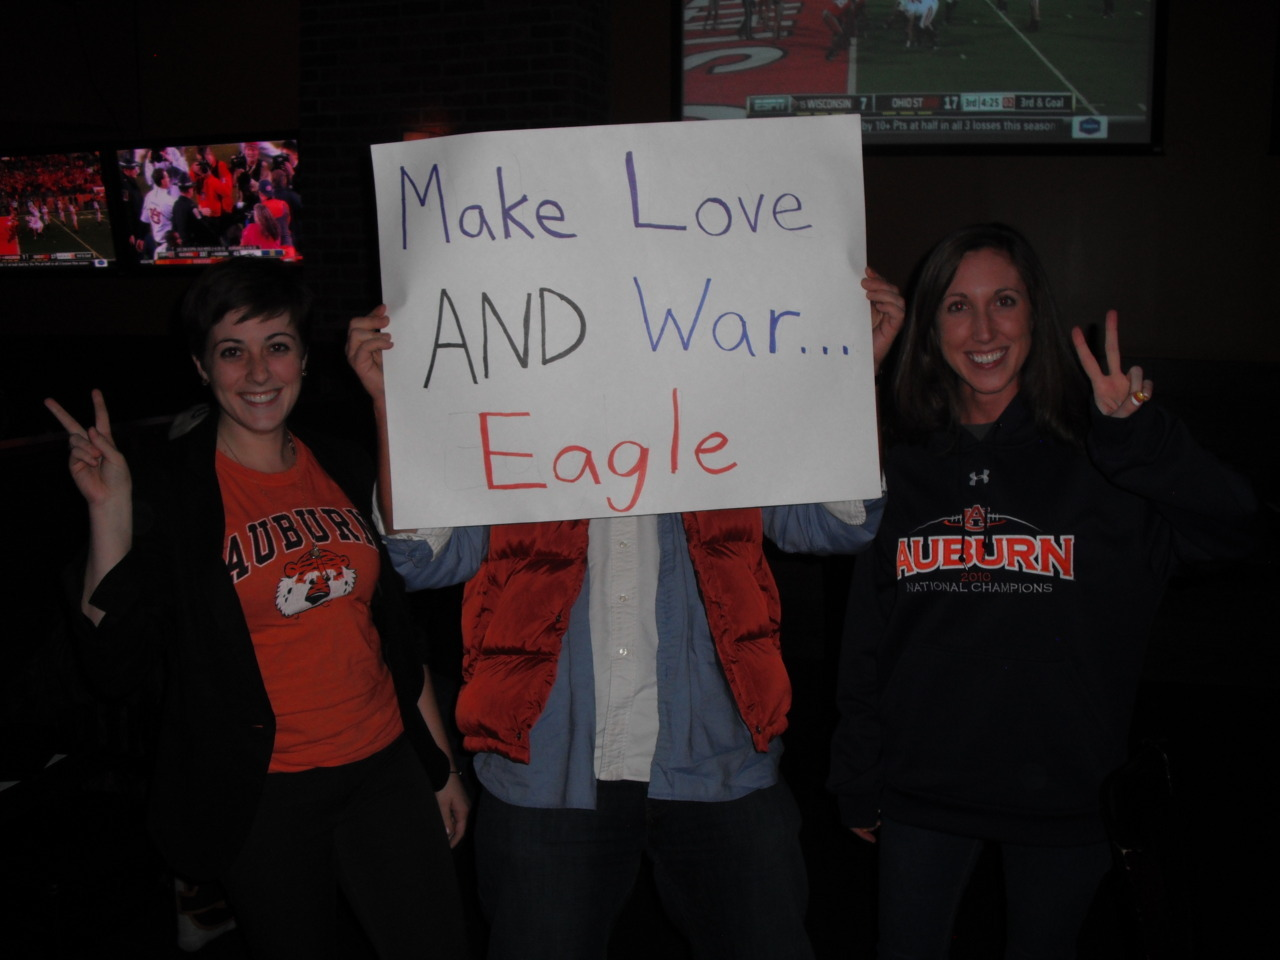 Make Love AND War … Eagle